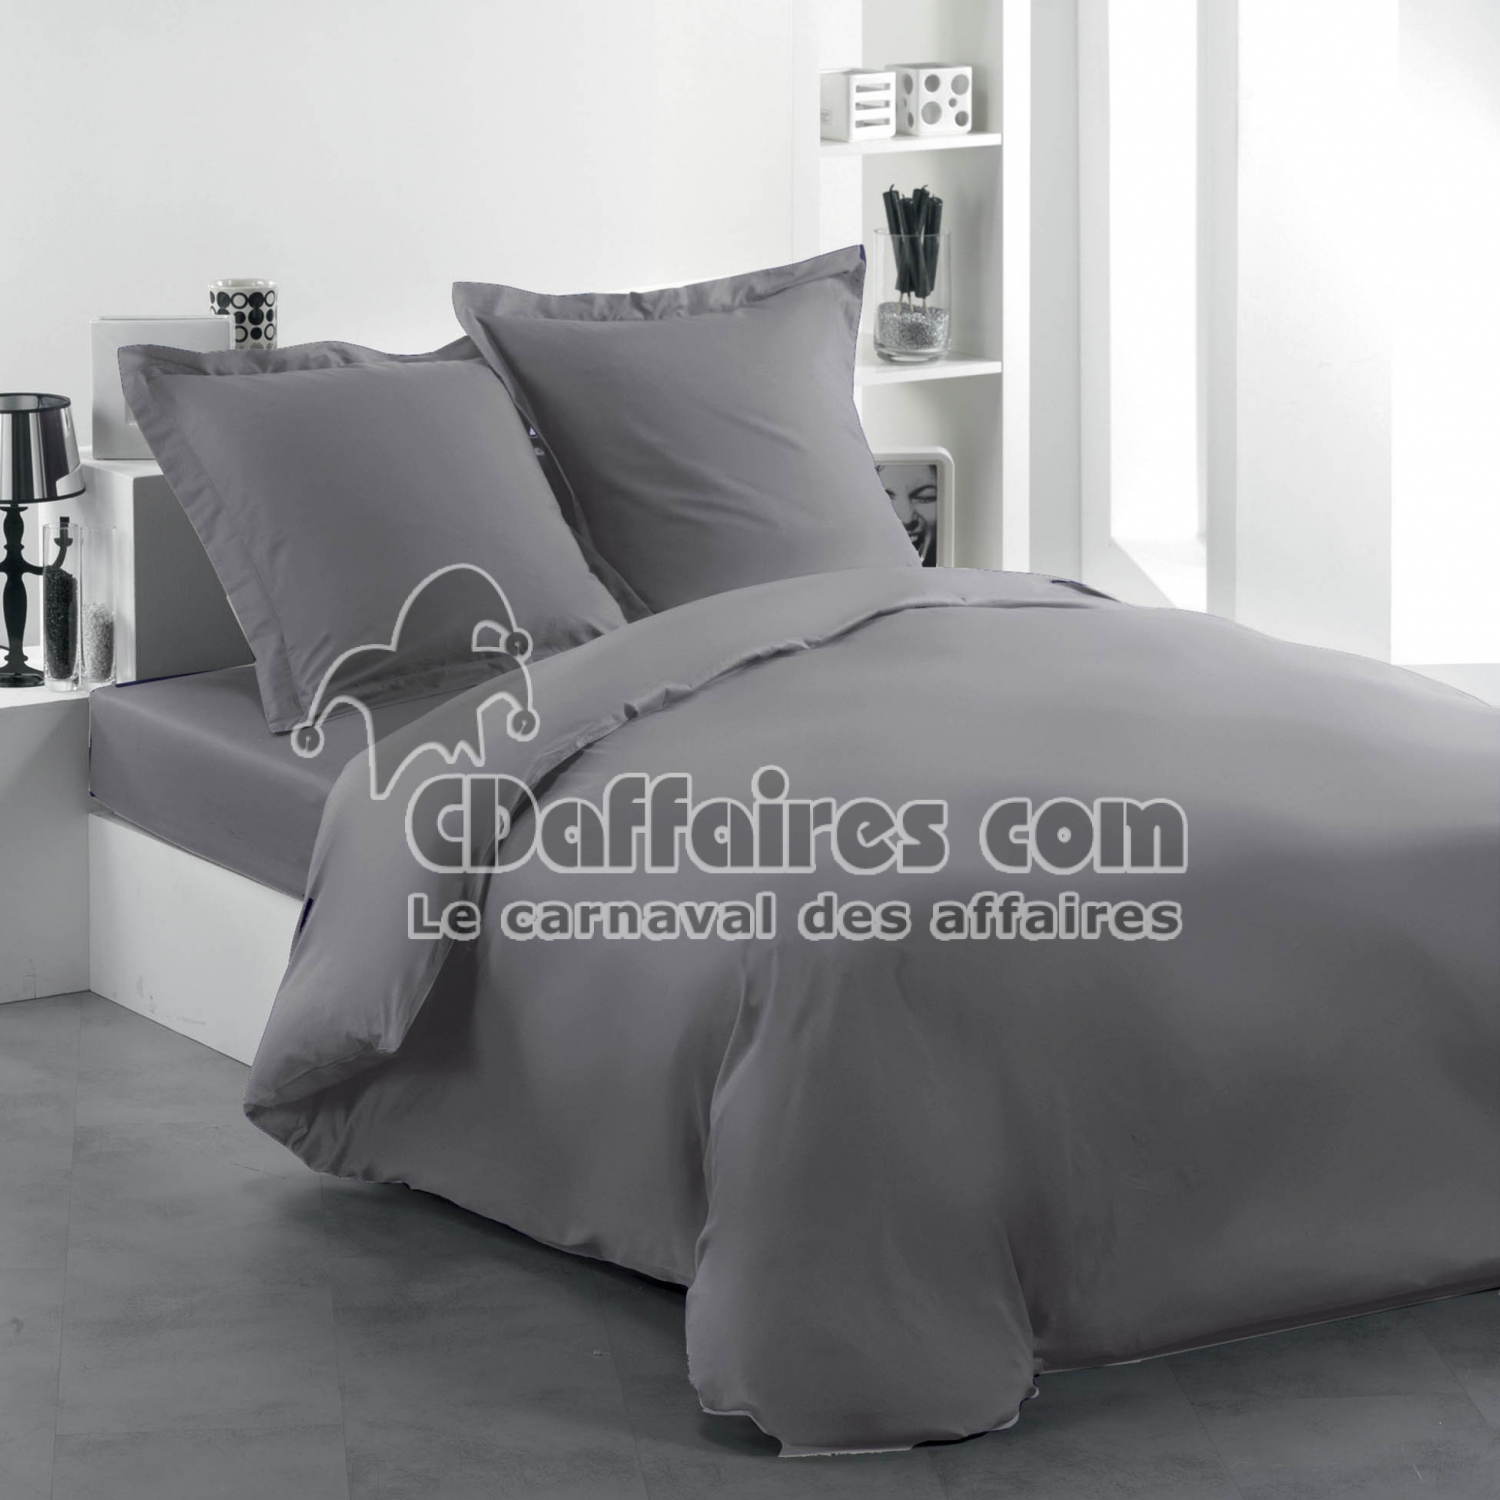 housse de couette 2 personnes 240 x 220 cm uni 57 fils lina gris souris cdaffaires. Black Bedroom Furniture Sets. Home Design Ideas